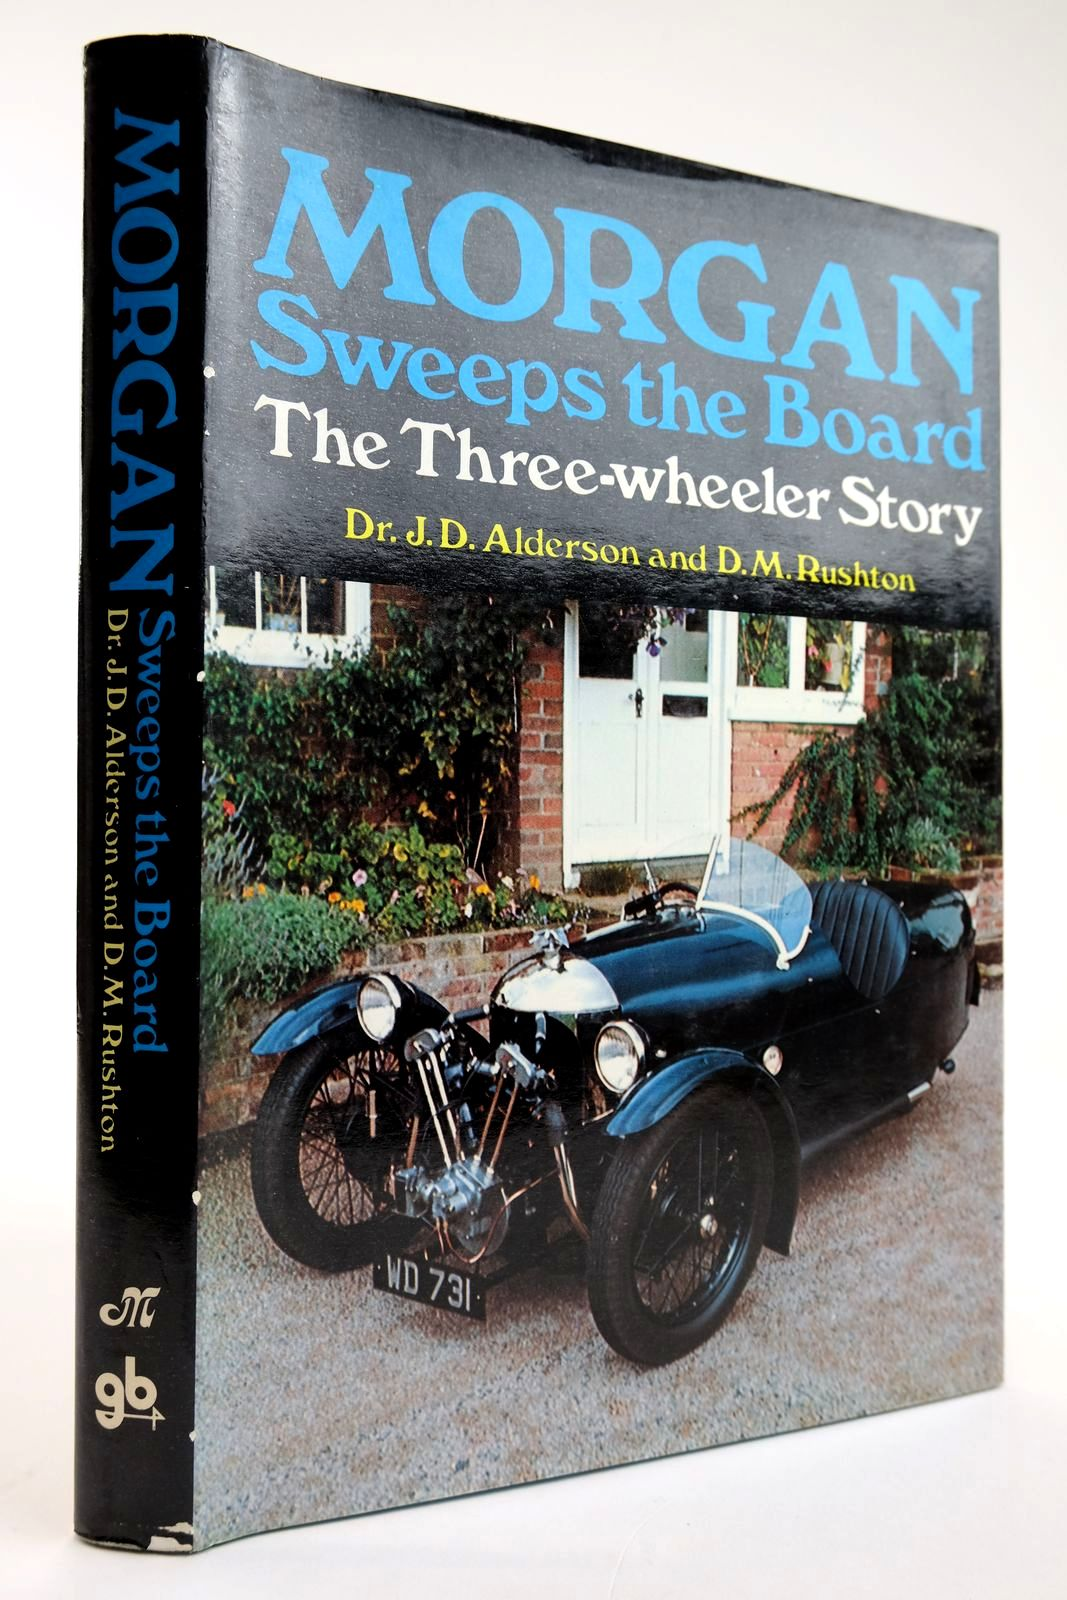 Morgan Sweeps The Board: The Three-wheeler Story